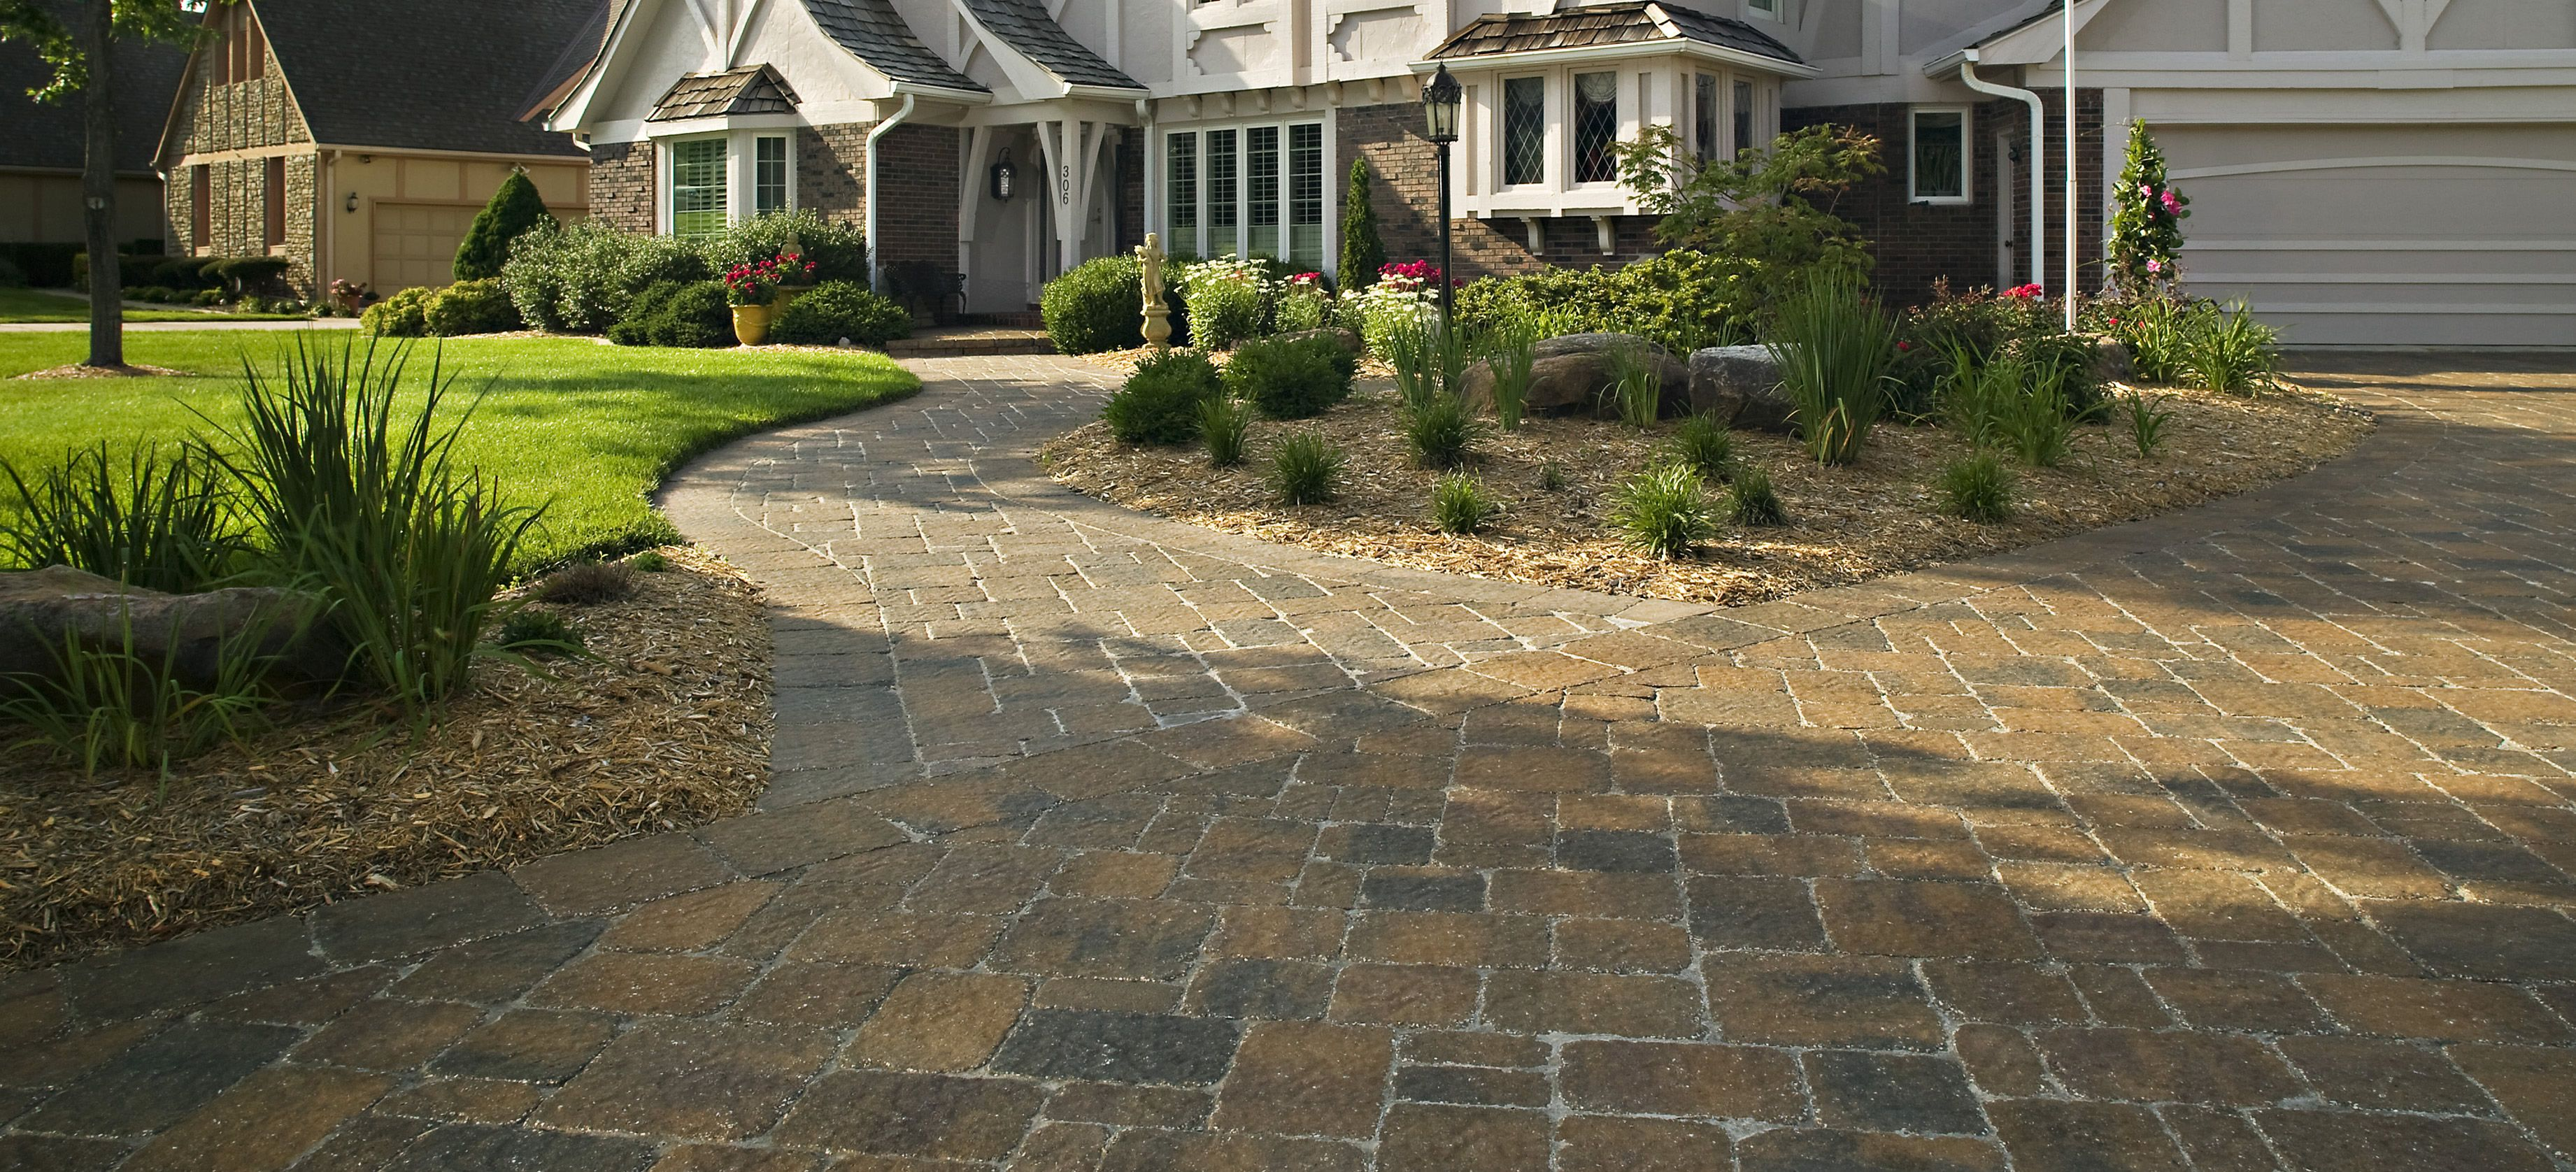 How Much Do Pavers Cost To Install Get The Inside Scoop